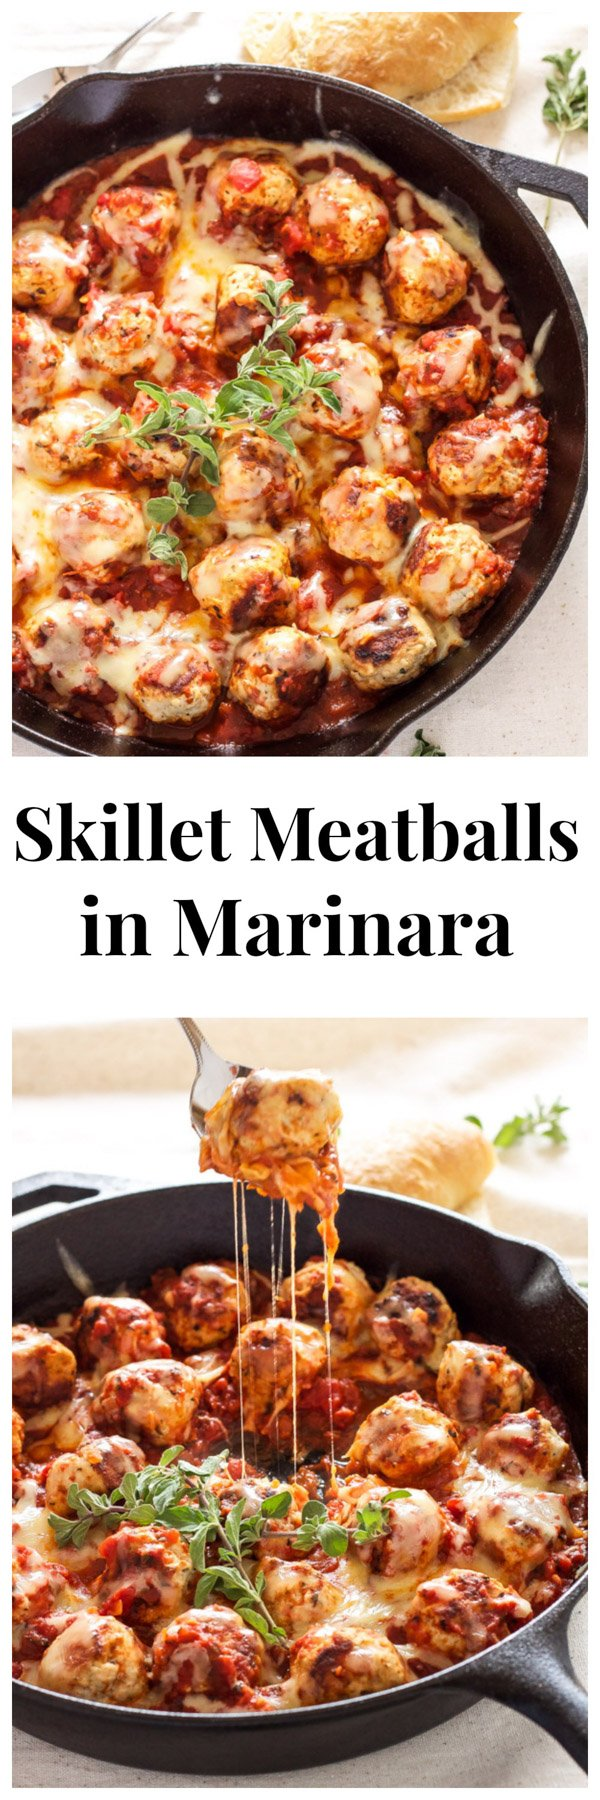 Skillet Meatballs in Marinara   Recipe Runner   Meatballs stuffed with mozzarella and simmered in marinara sauce. An easy one pan meal!